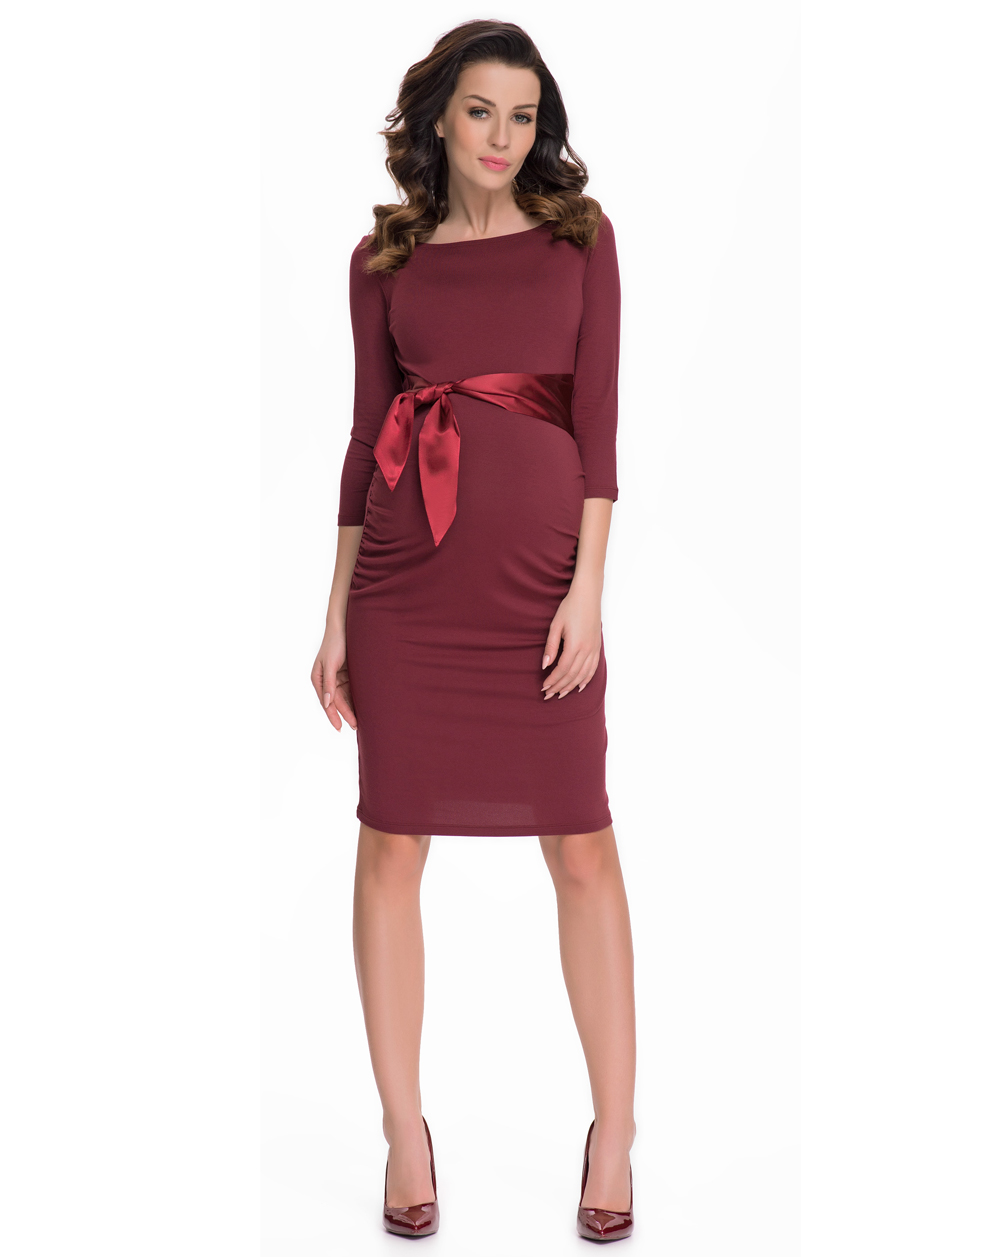 Maternity Clothes Rental | Affordable Pregnancy Wear & Dress Clothes